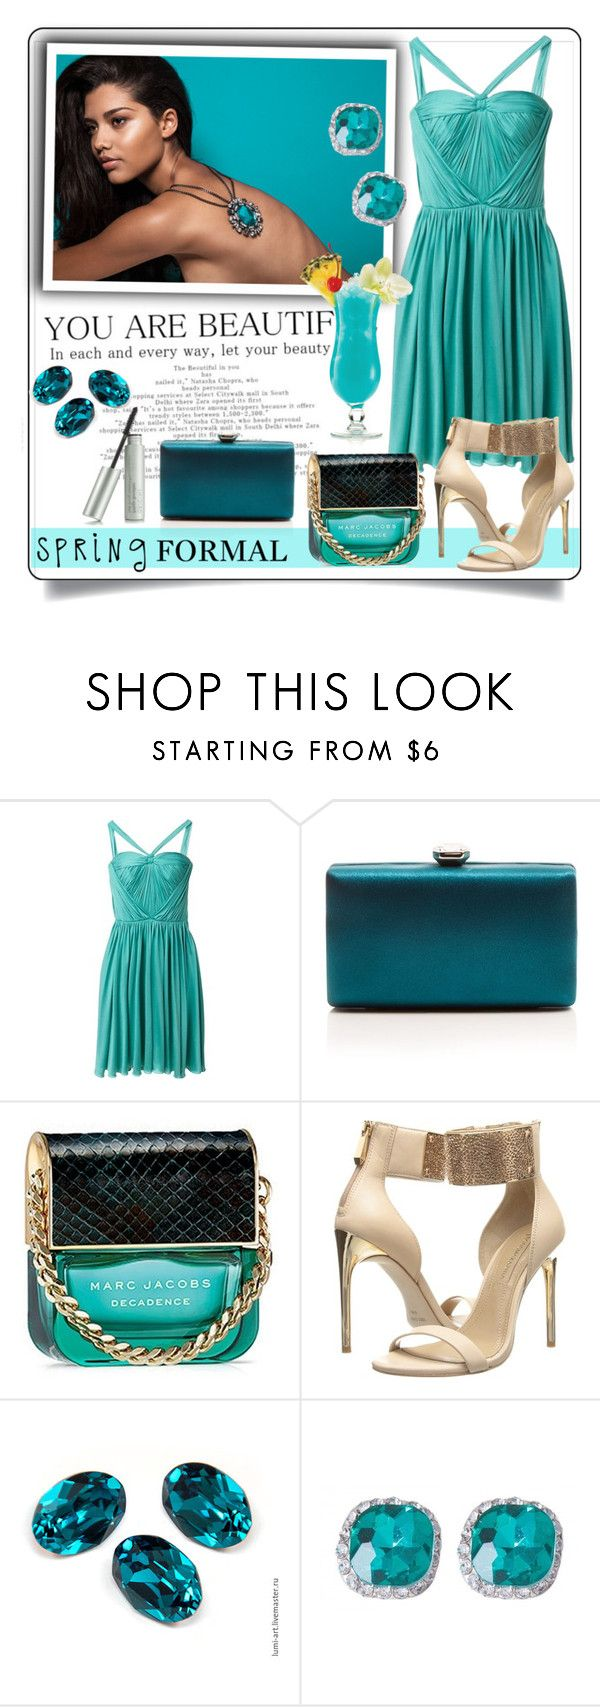 """""""Spring cocktail"""" by anemone-ci ❤ liked on Polyvore featuring Christian Dior, La Regale, Marc Jacobs, BCBGMAXAZRIA and springformal"""